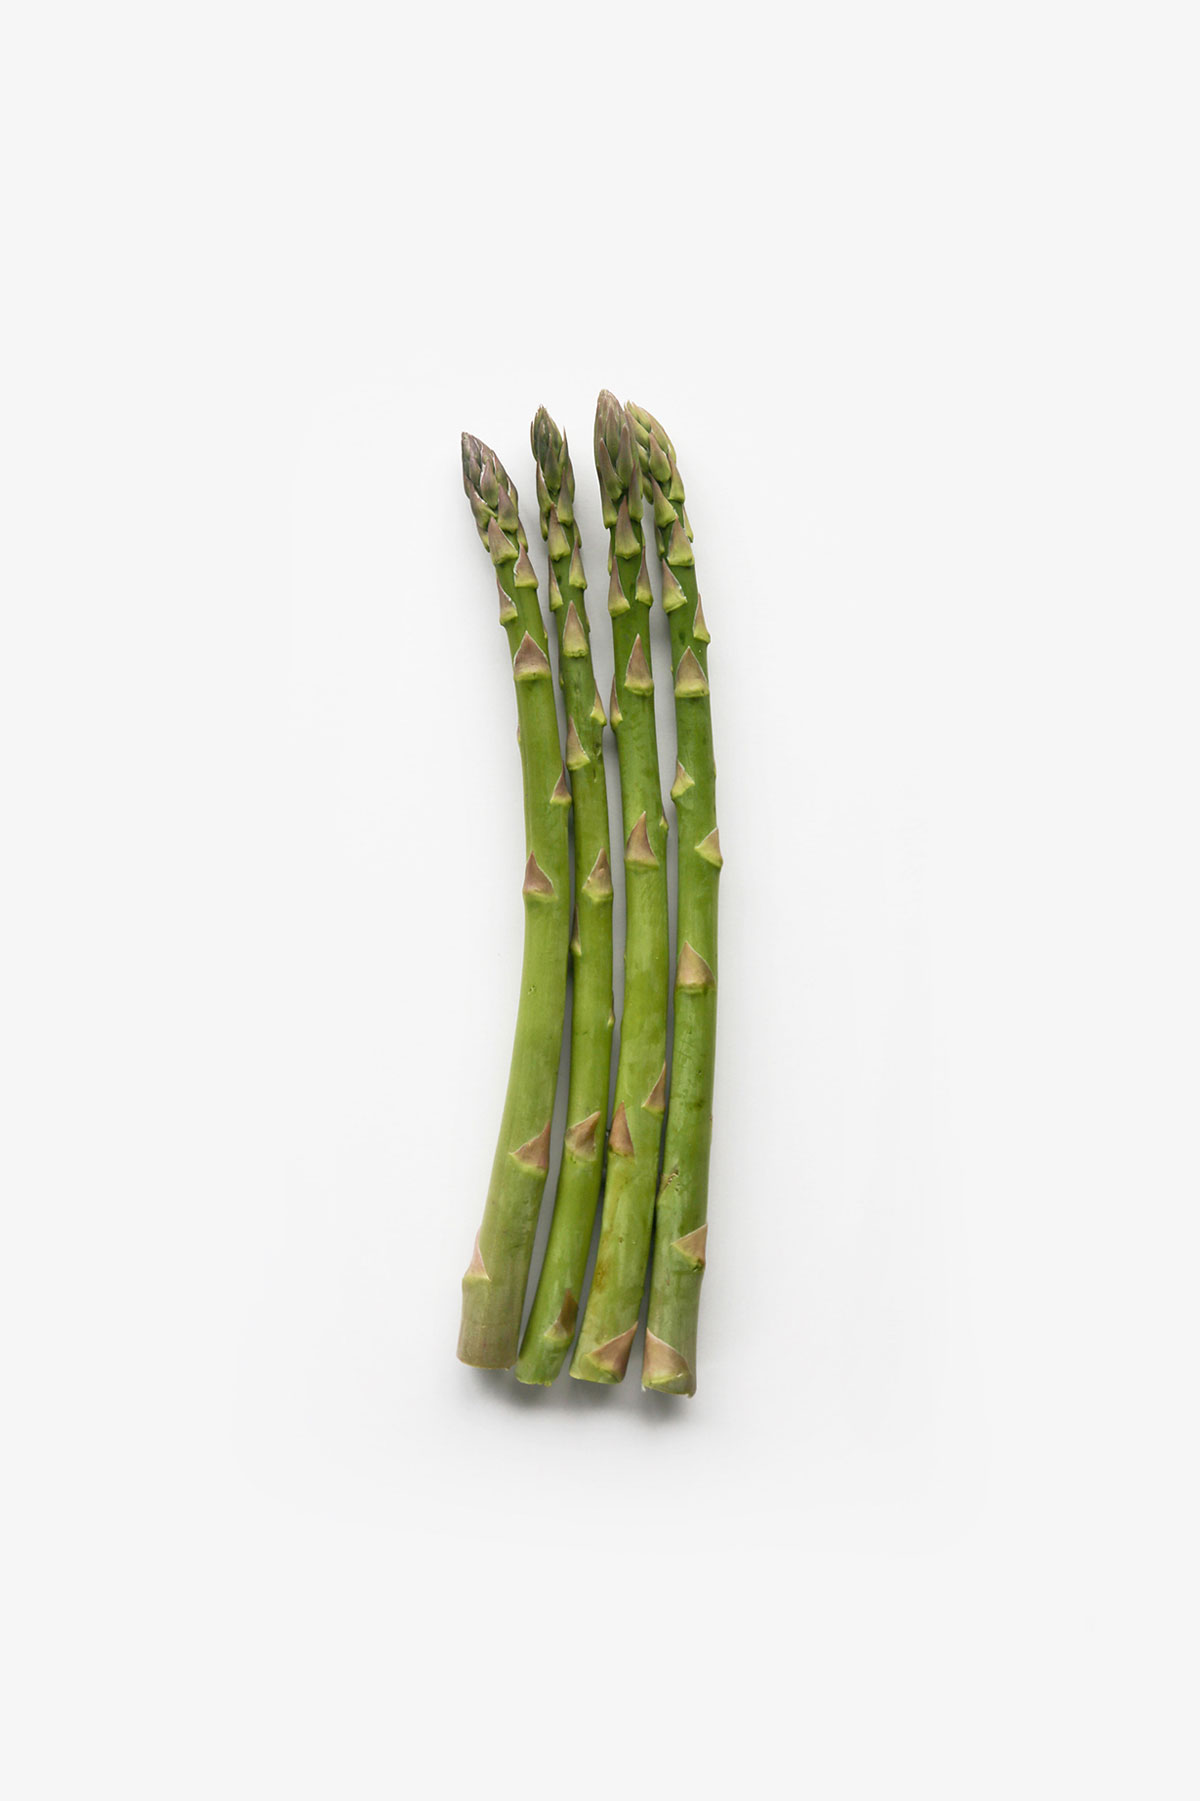 Keto Asparagus, a guide to keto foods for low carb. keto, keto ingredients, keto foods, keto produce, keto vegetables, ketogenic diet, keto shopping list, low carb, low carb foods, low carb vegetables, lchf, lchf foods